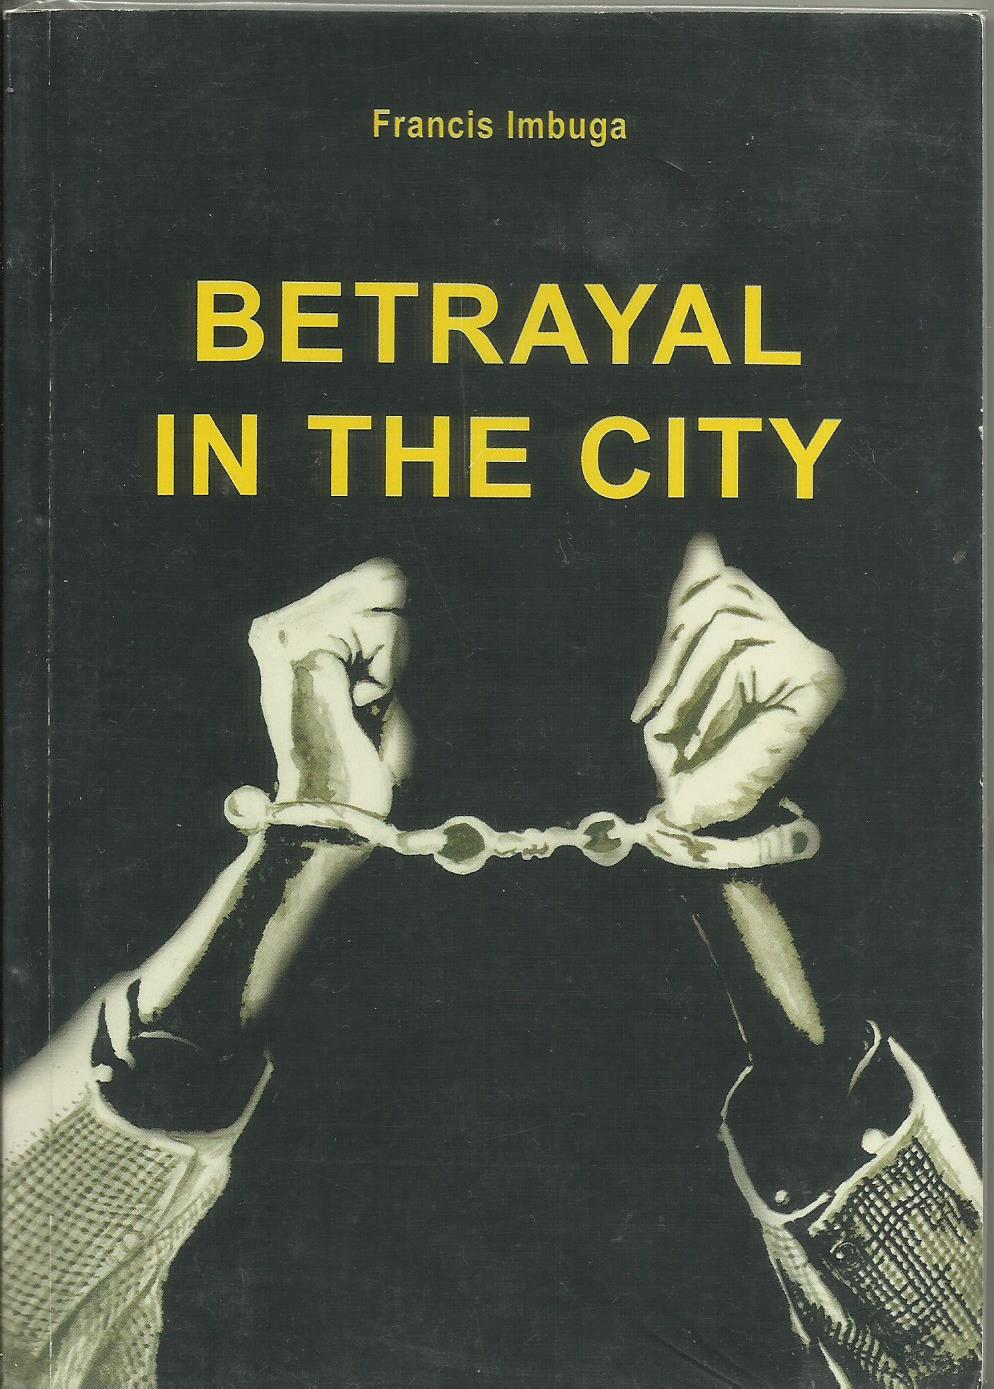 Betrayal in the City Summary and Study Guide